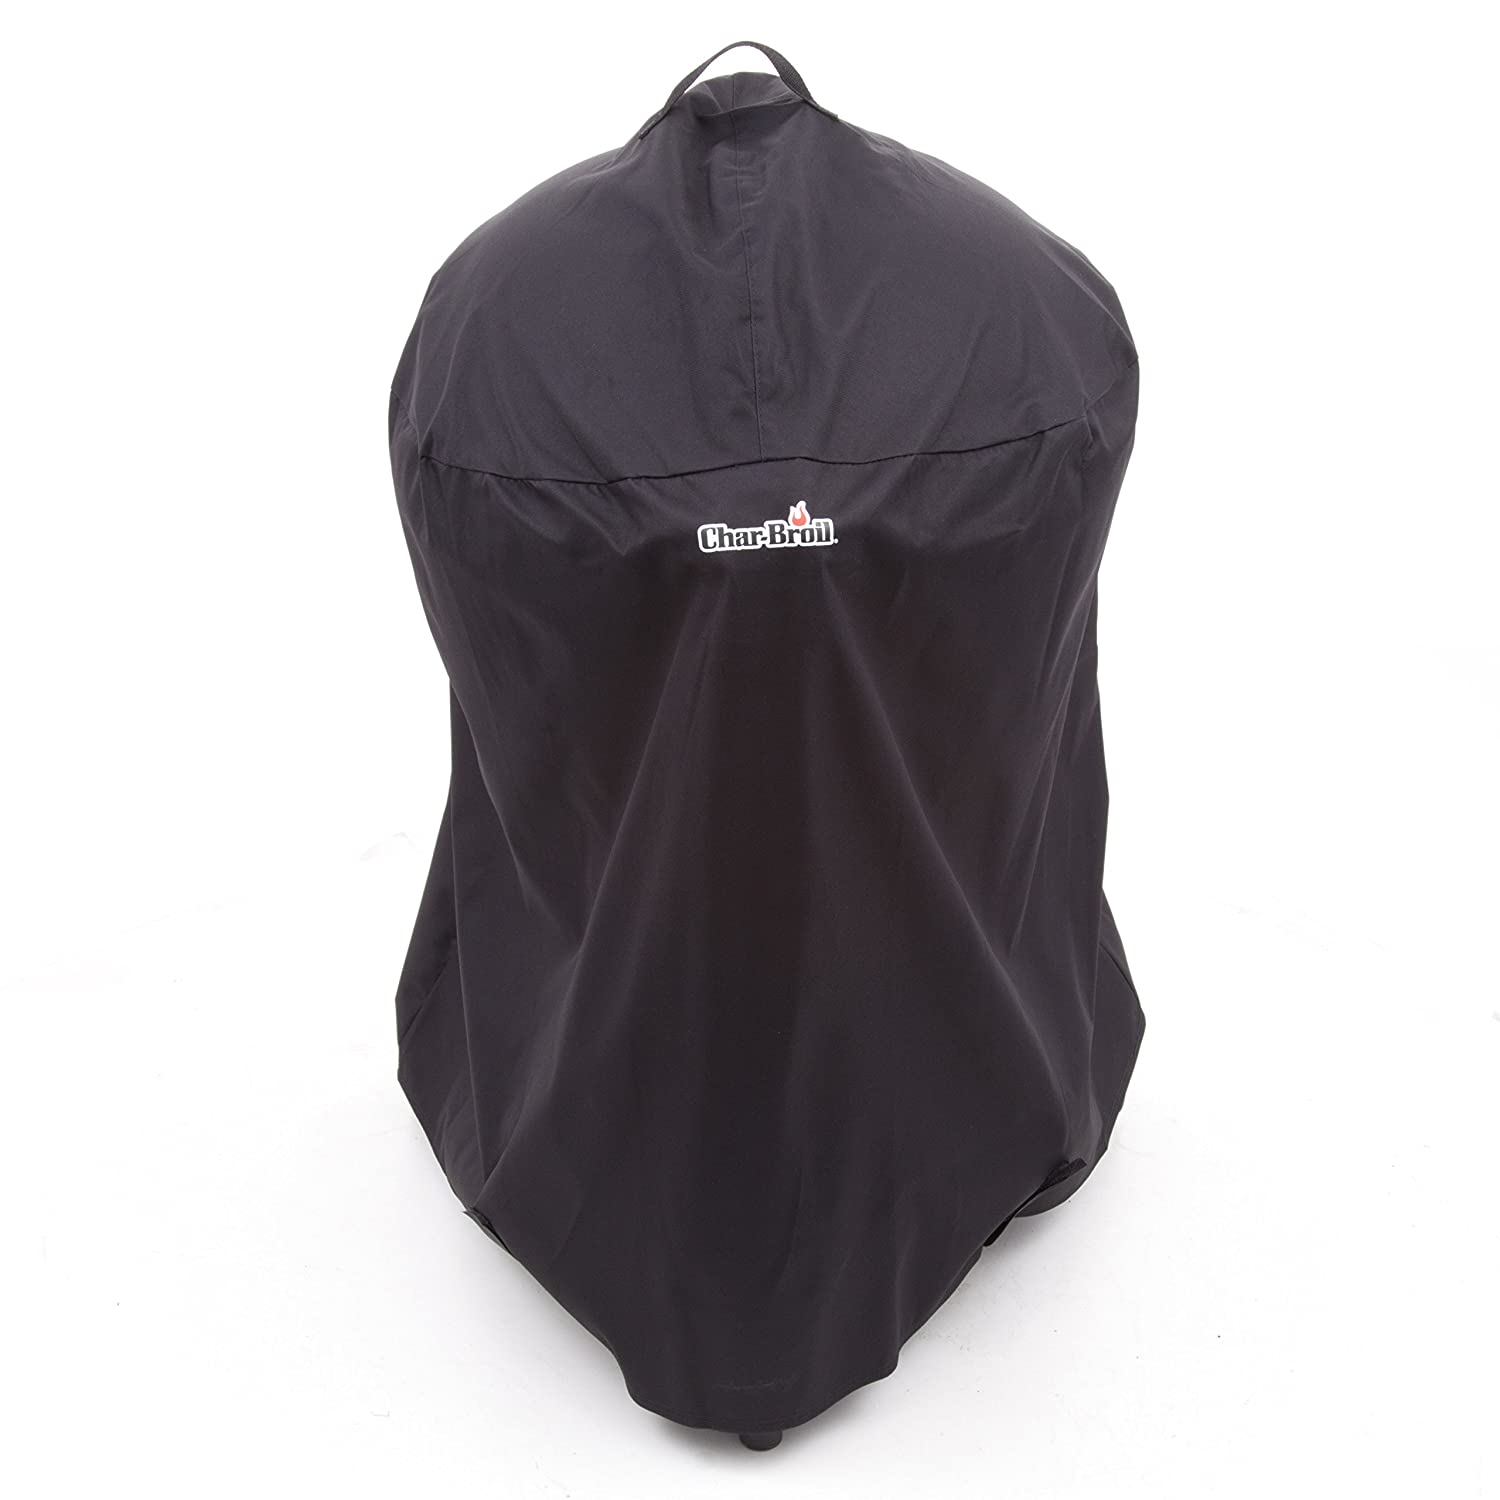 CHAR-BROIL 140 759 - Kettleman Grill Cover, Black.